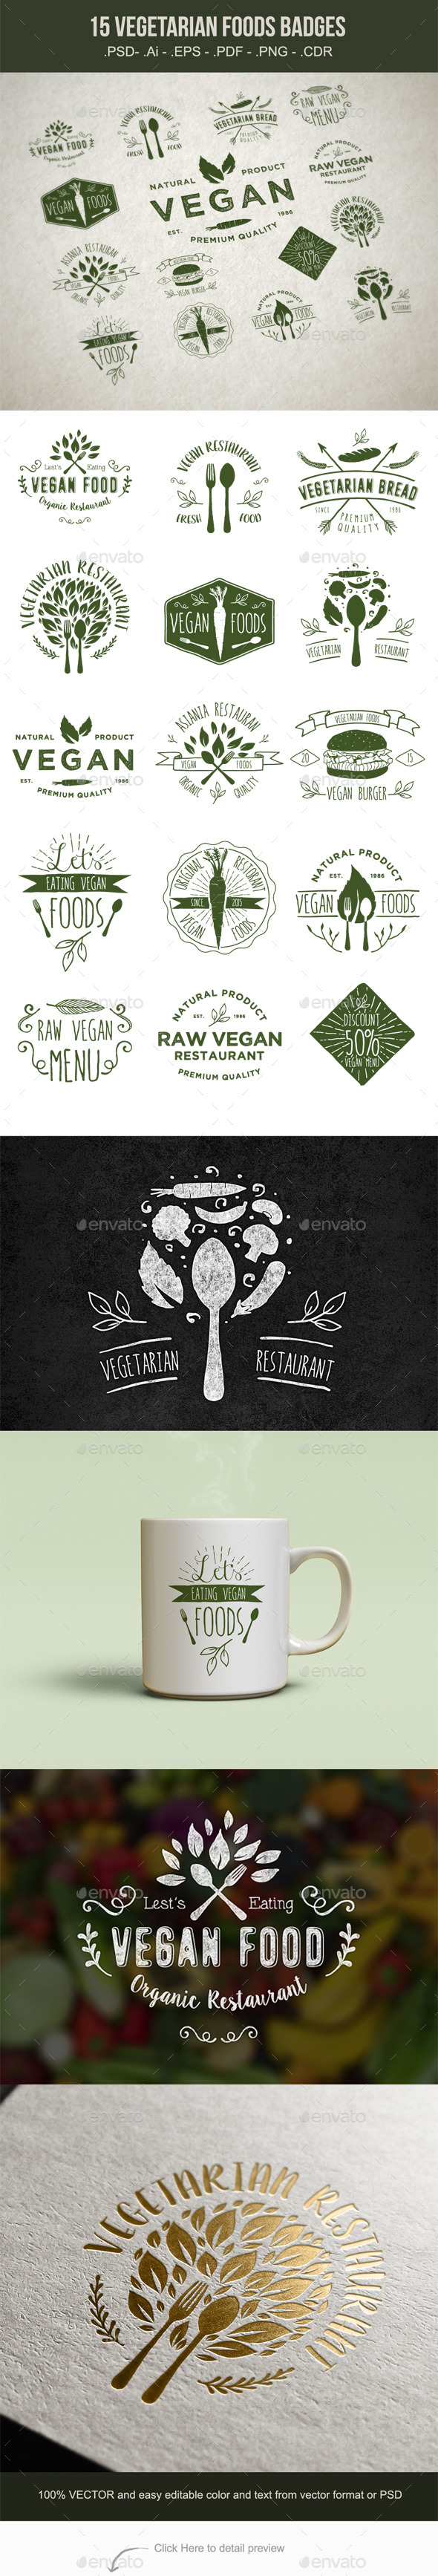 GraphicRiver 15 Vegetarian Foods Badges 11184810